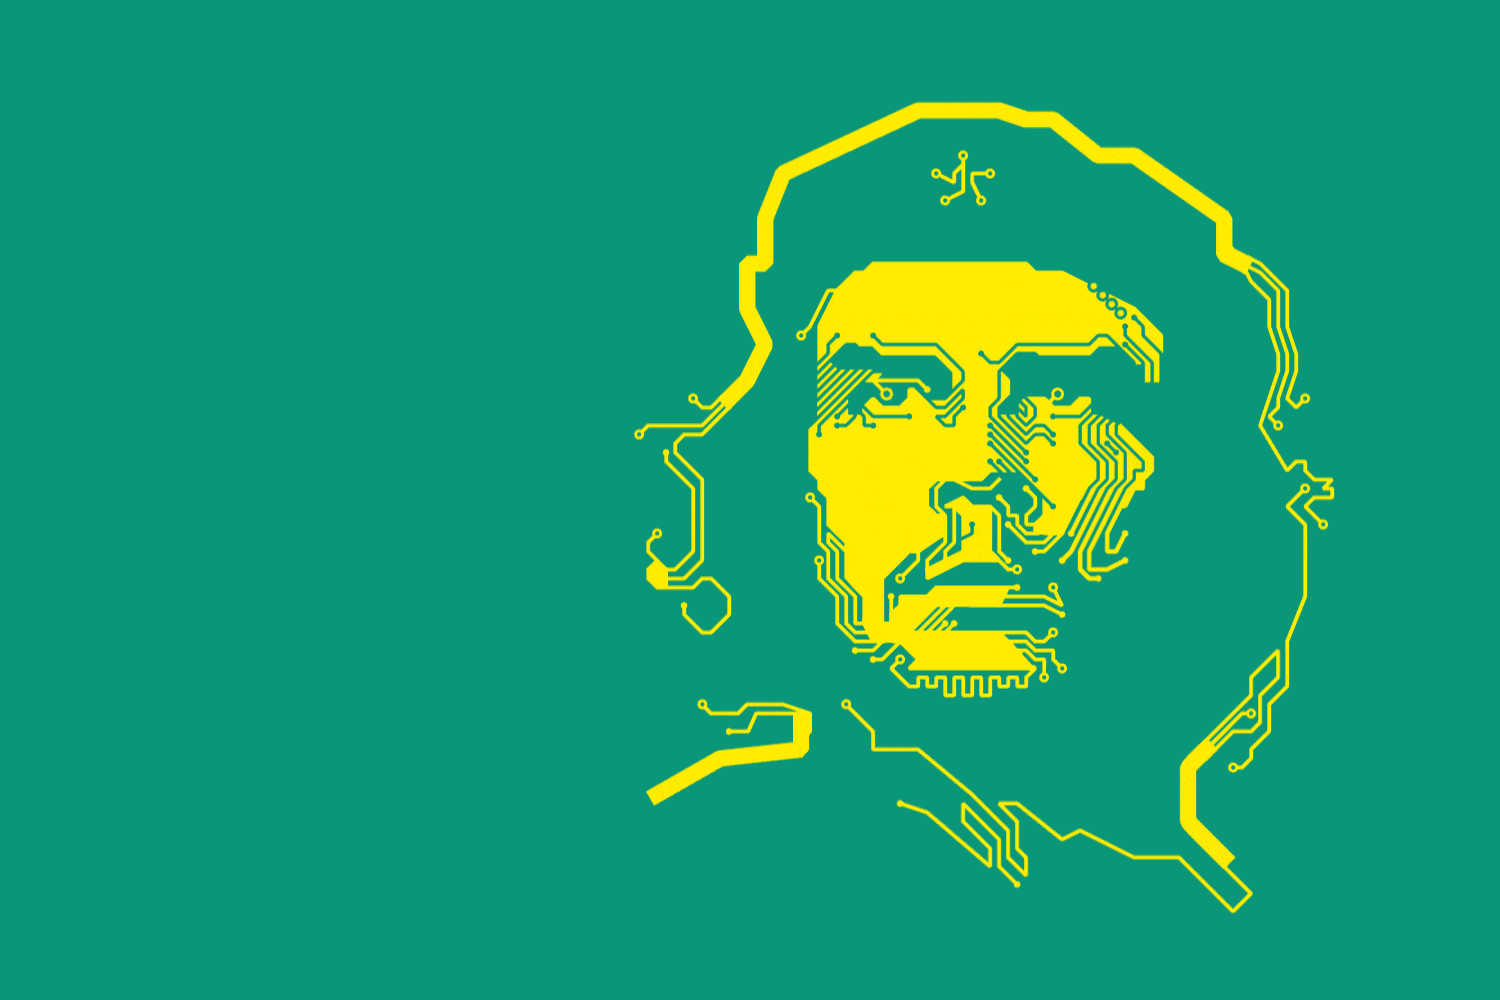 The Che Guevara motif in printed circuit board optics underscores KSG's revolutionary technologies